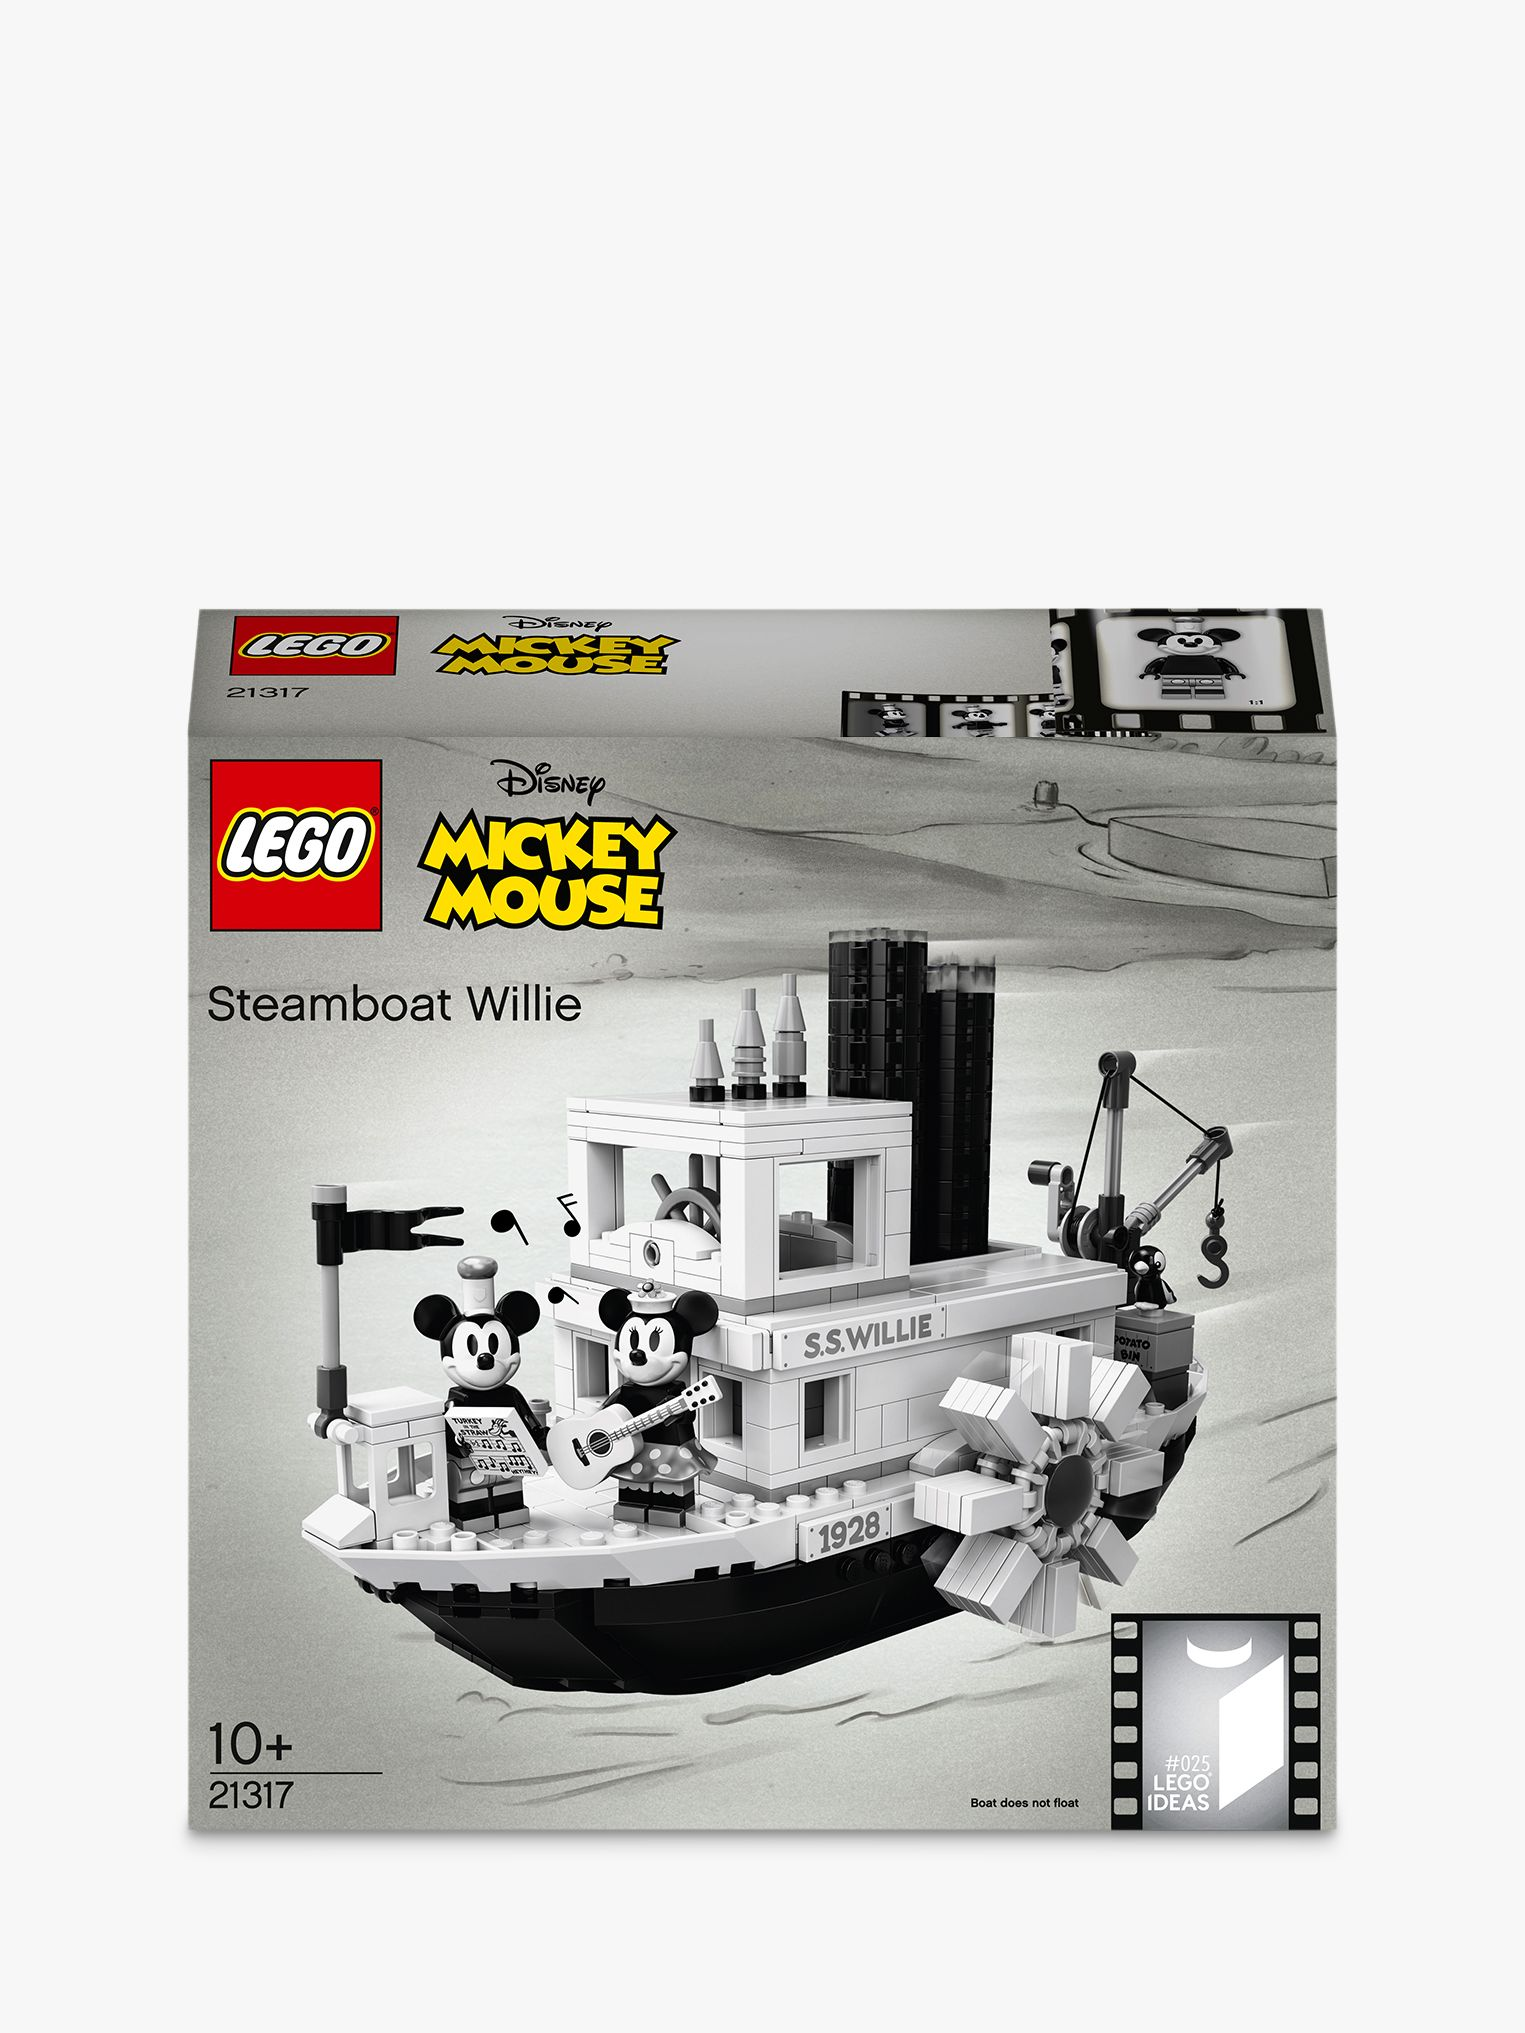 Lego LEGO Ideas 21317 Disney Mickey Mouse Steamboat Willie Vintage Collector's Model